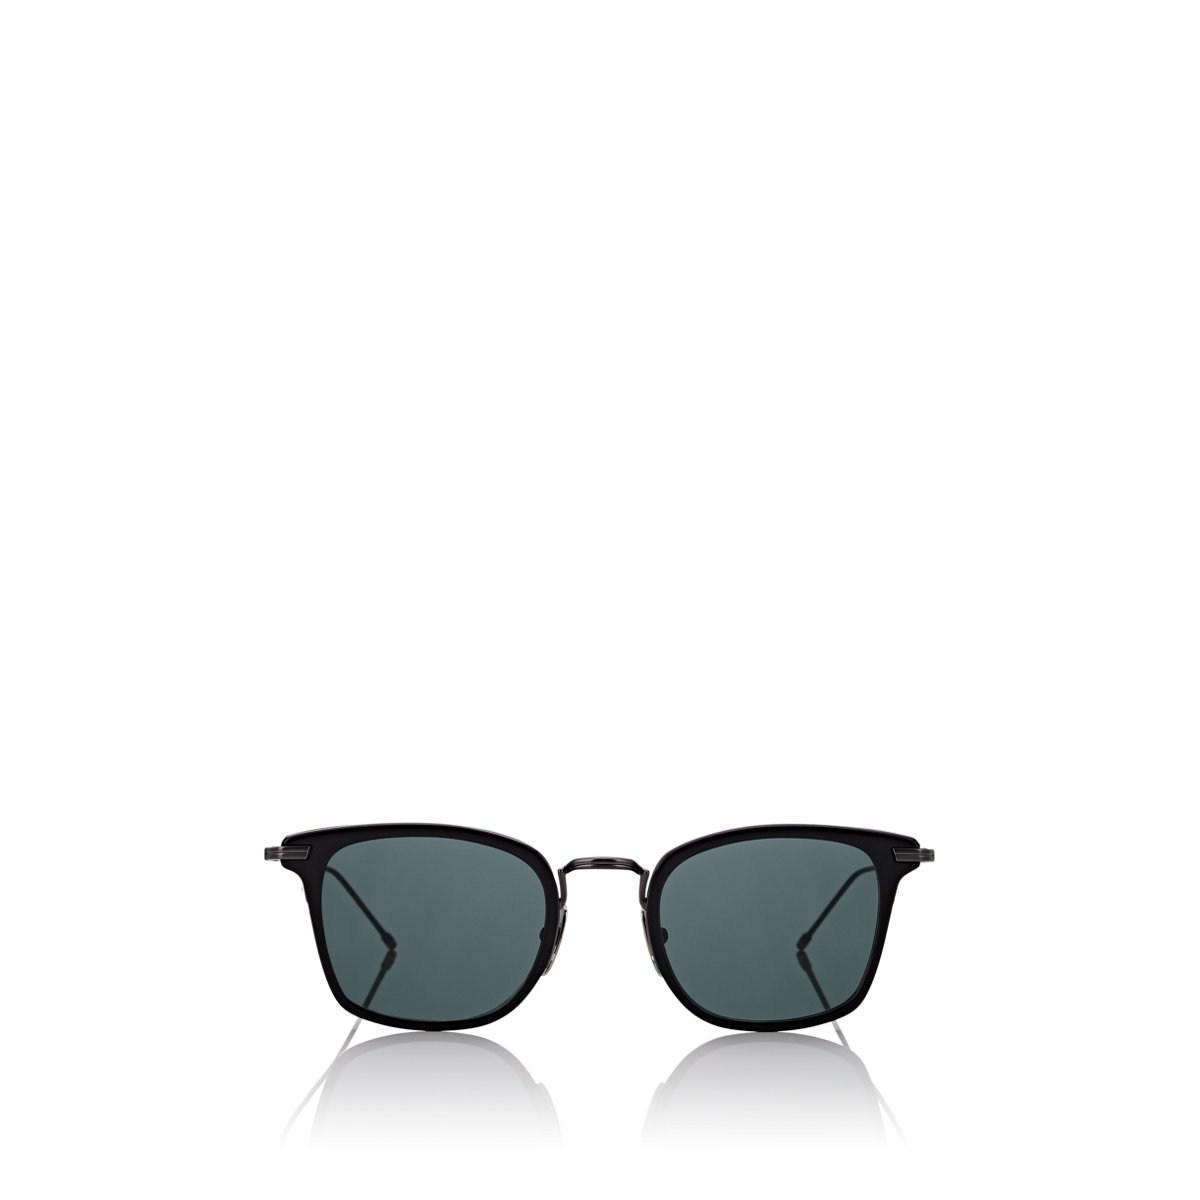 b6c33324cc9e Thom Browne Tb-905 Sunglasses in Black for Men - Lyst